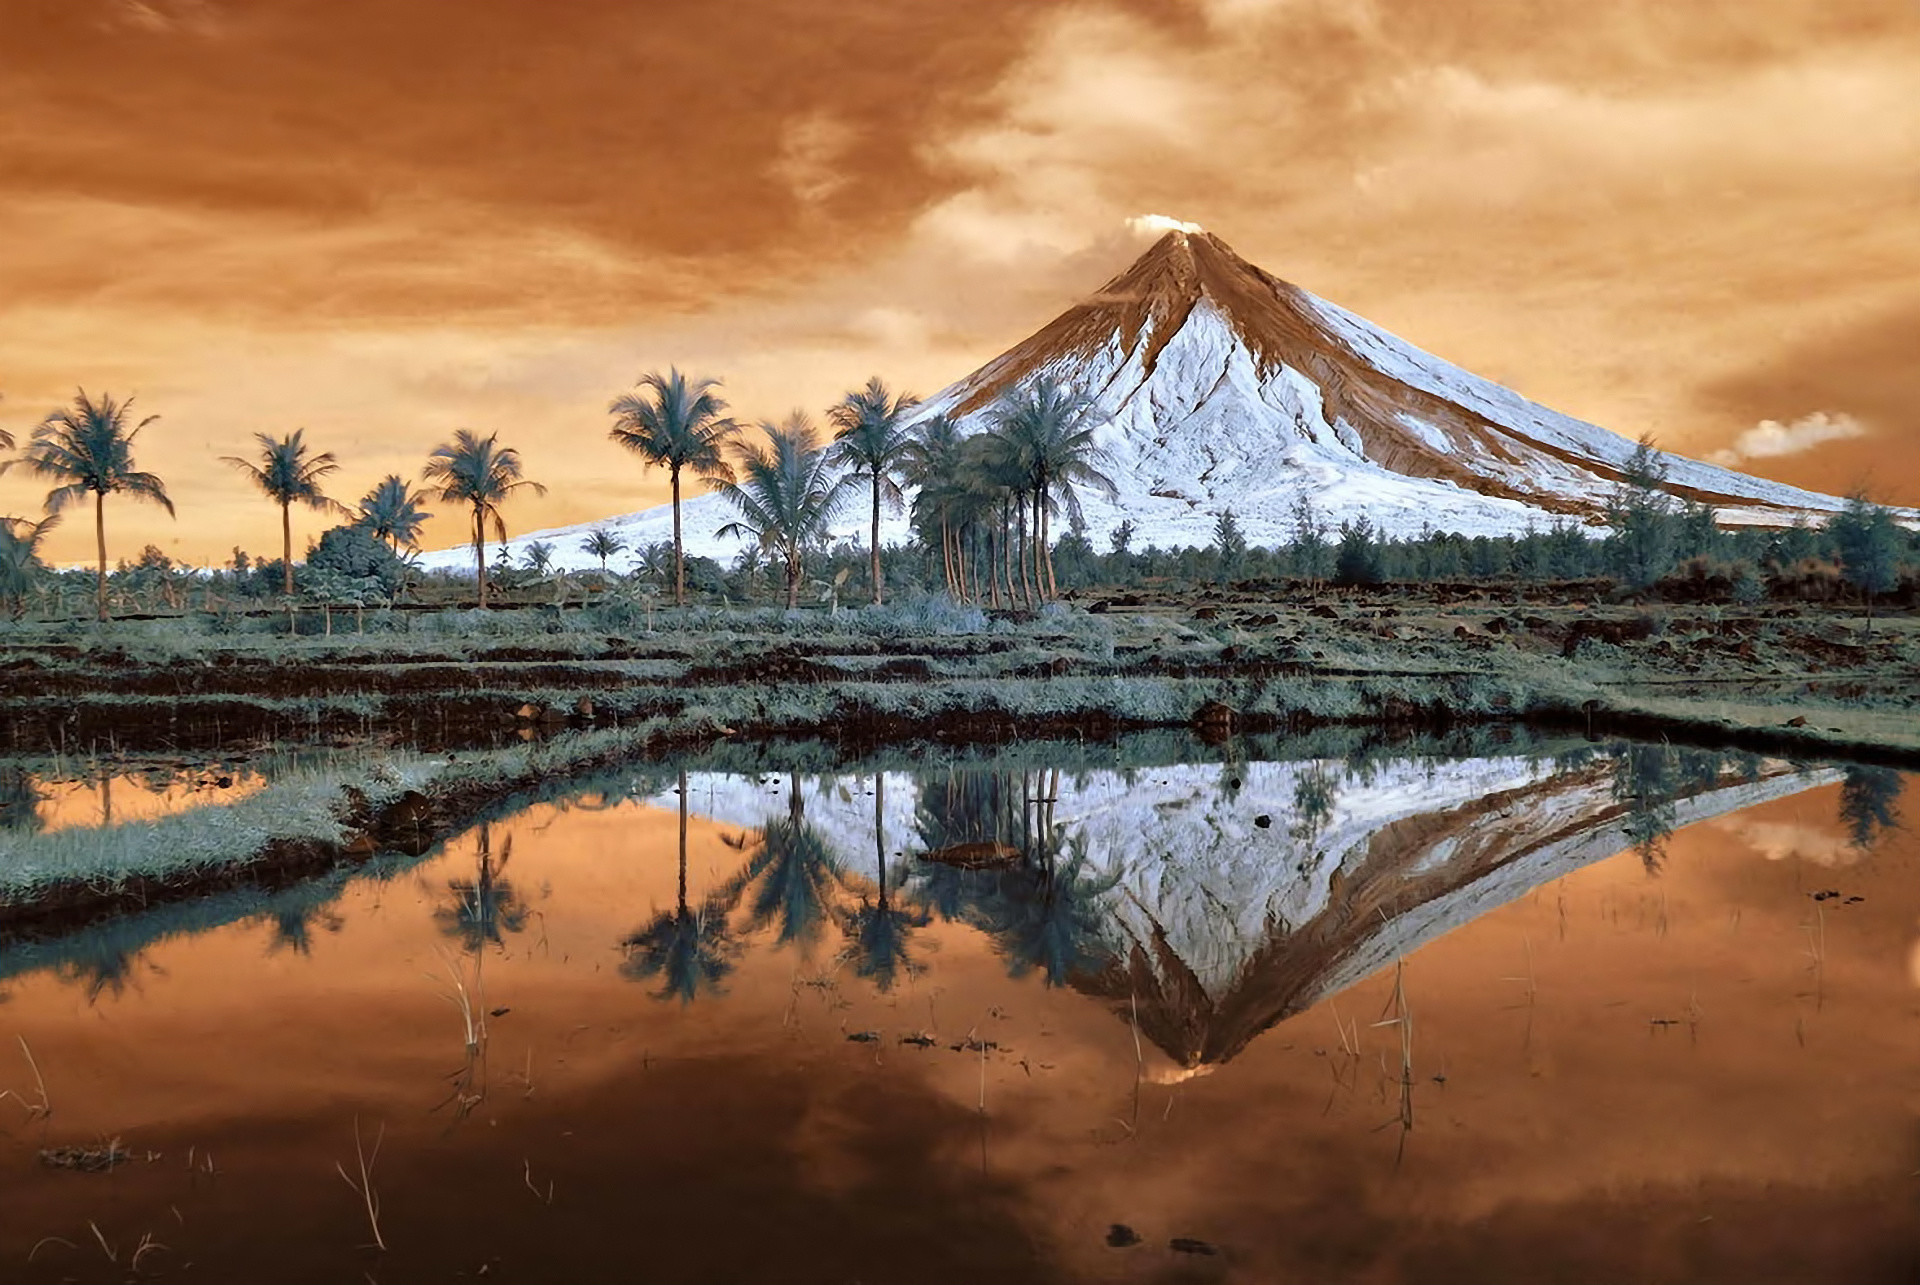 1920x1285 mountain, luzon,landscape, volcano mount, cool, display, philippines, cute,  amazing,hd wallpaper, reflection, mayon, lovely, trees, nature, Wallpaper HD